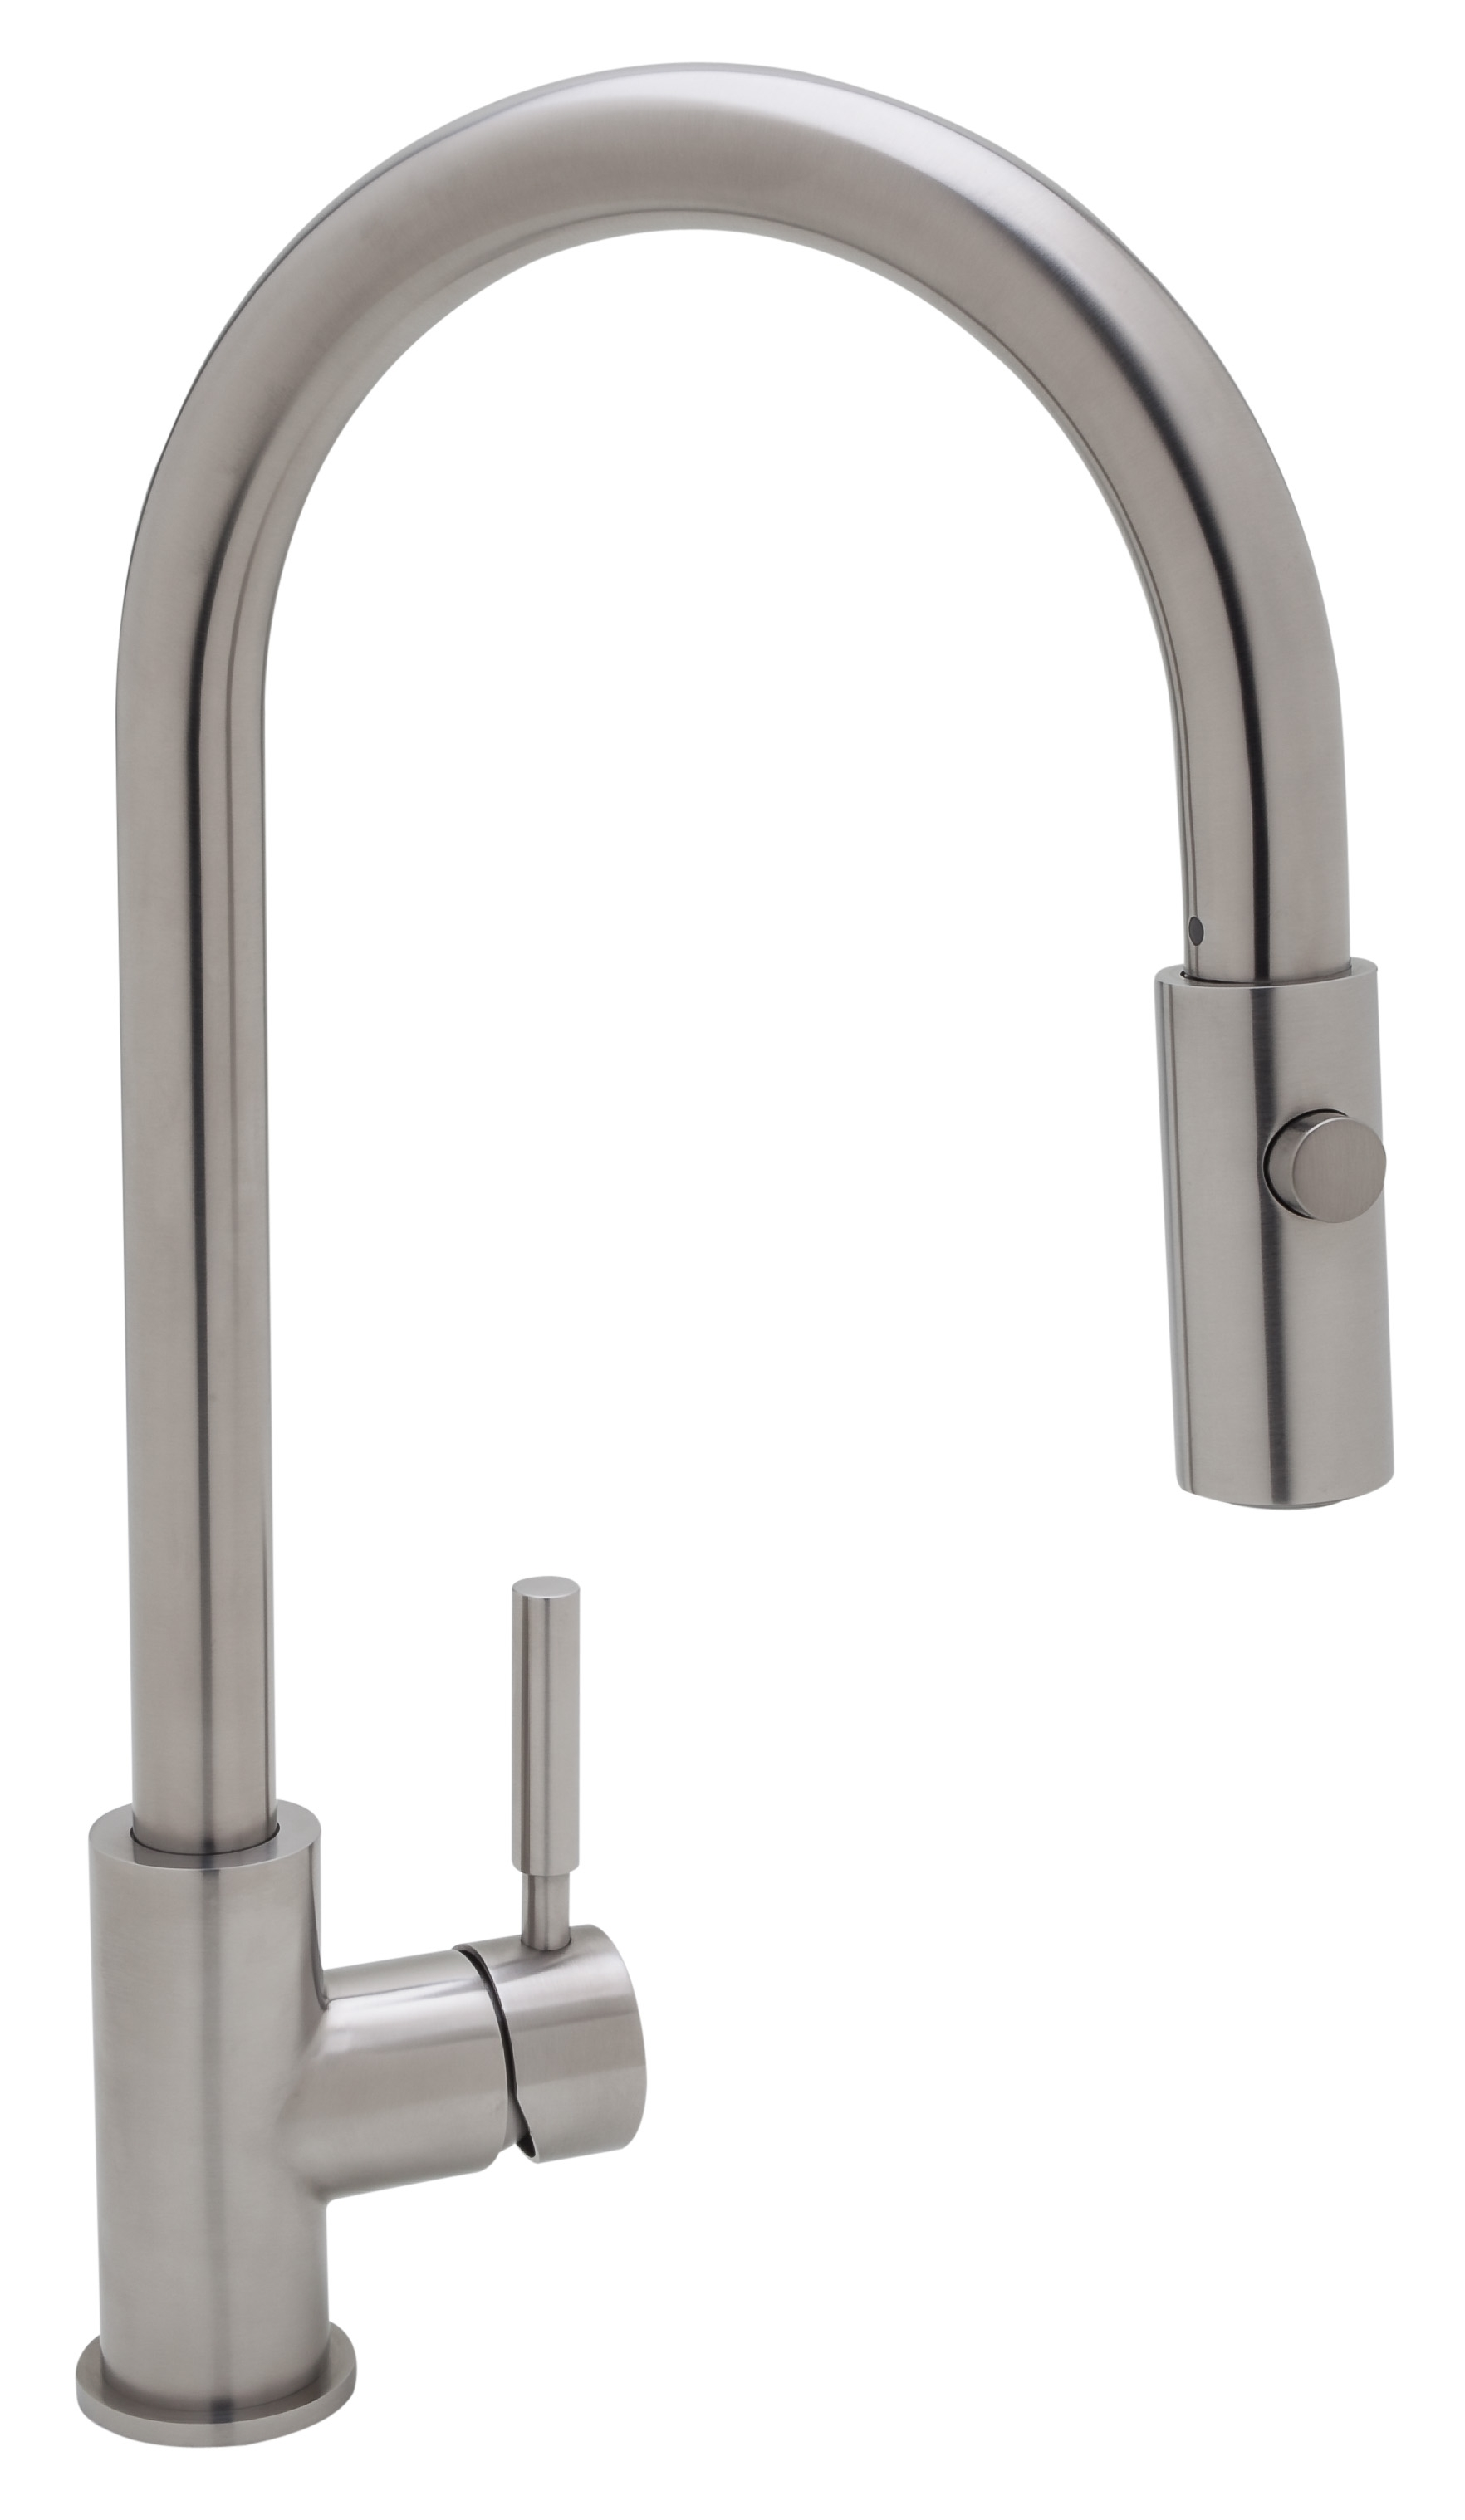 faucet kitchen faucet finishes in measurements 1764 x 3035